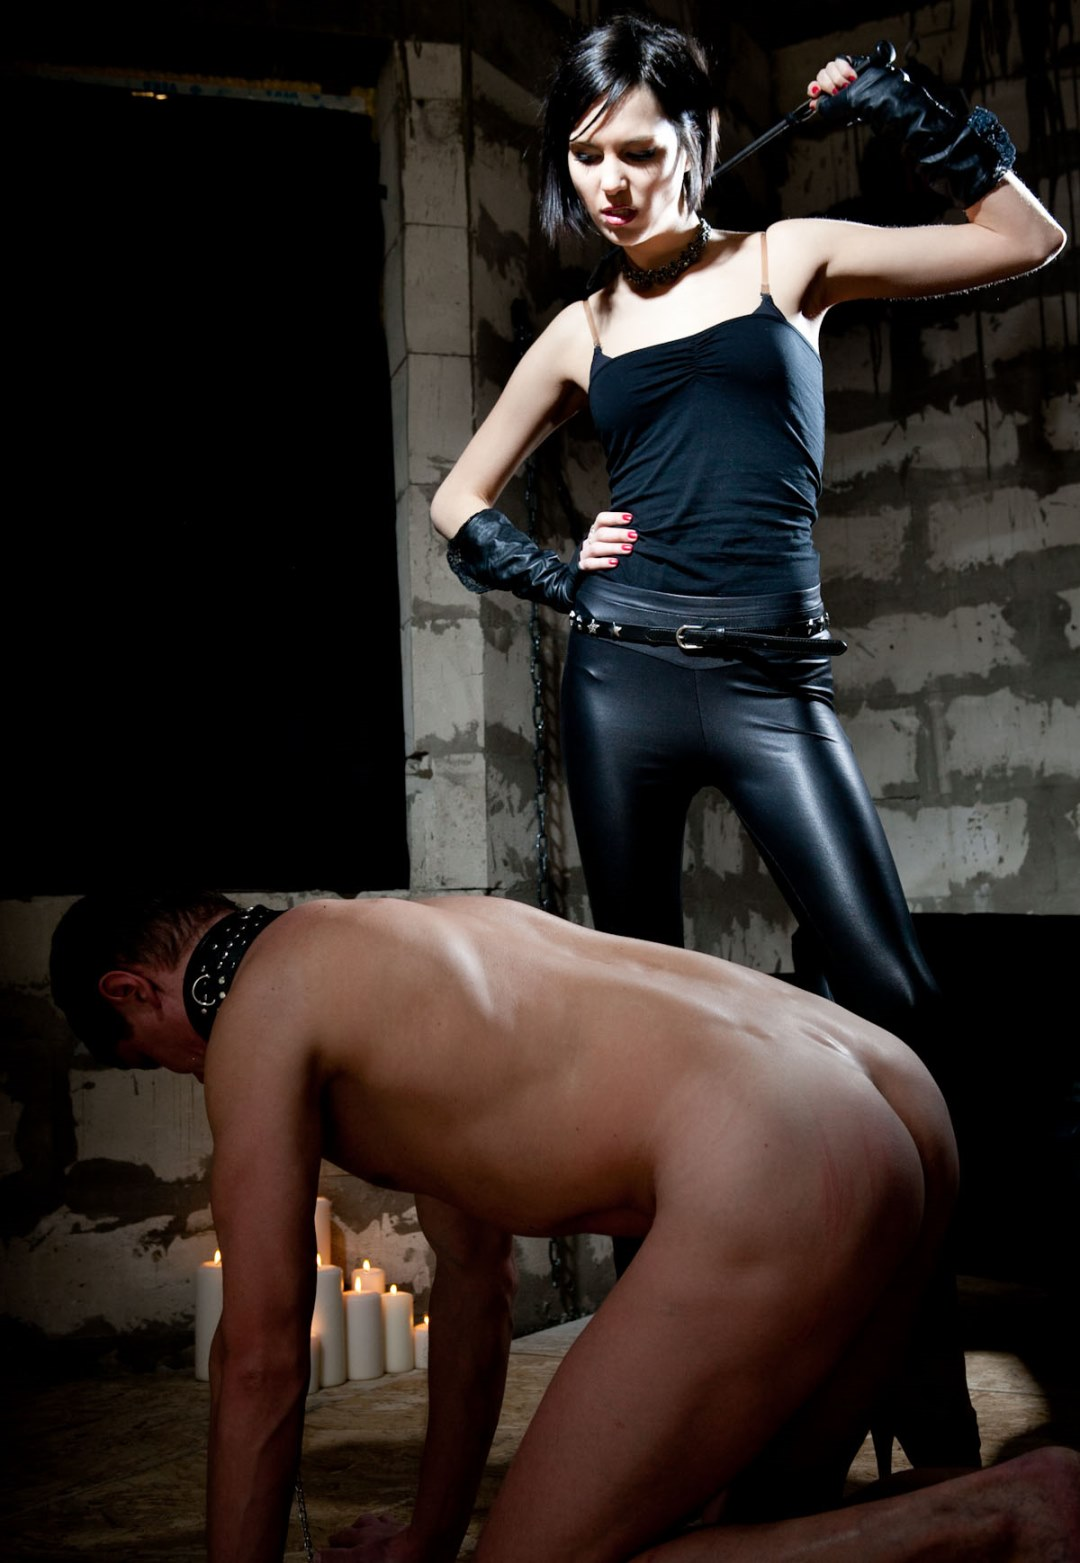 Skinny Russian Mistress Jane In Leather Pants Punishes Her Nude Slave - Whipping Him